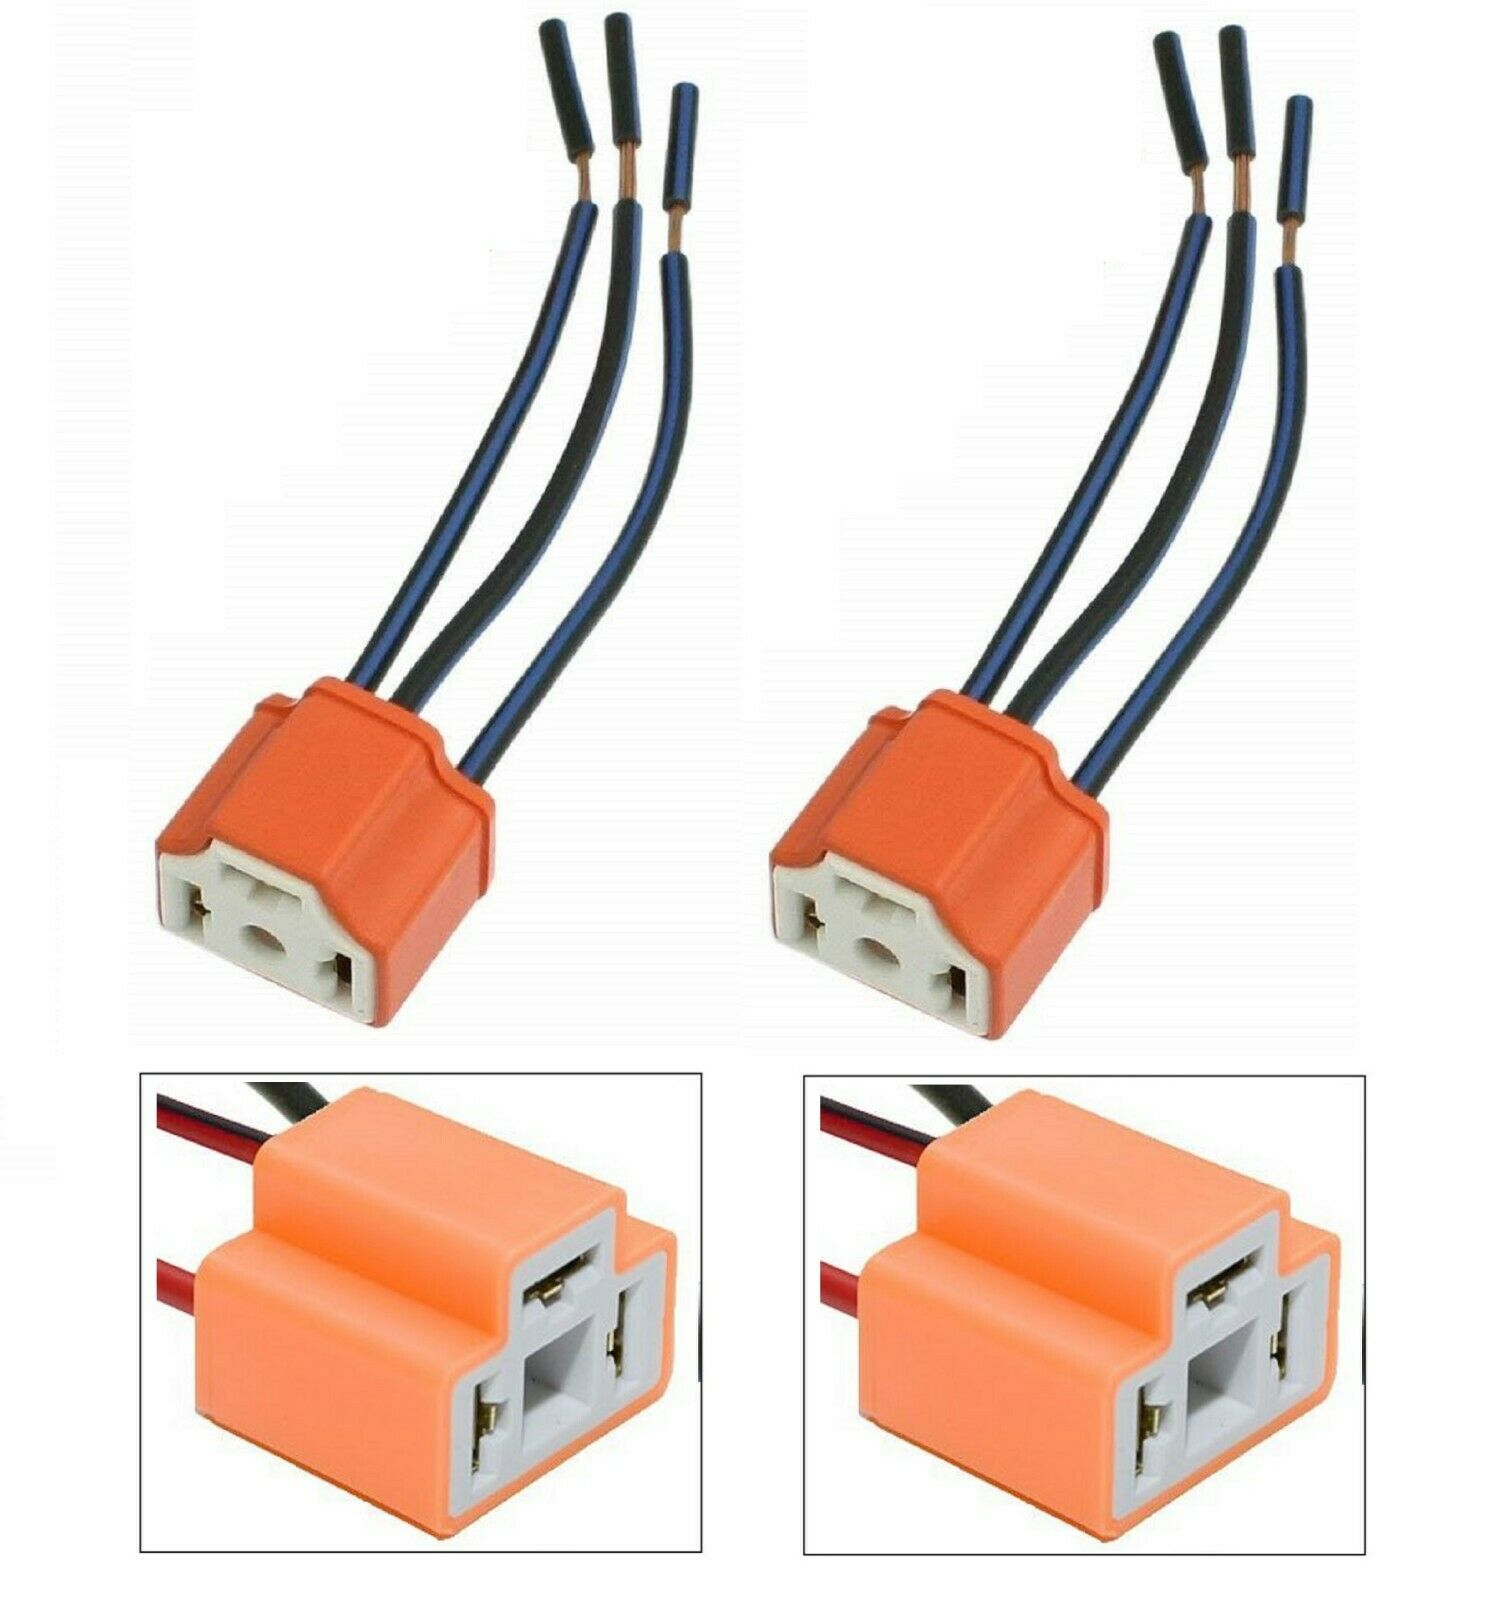 9003 H4 Bulb Wiring 9004 Headlight Wire Diagram Connections Pigtail Female Ceramic Hb2 Head Light Two Harness Rh Picclick Com Specifications